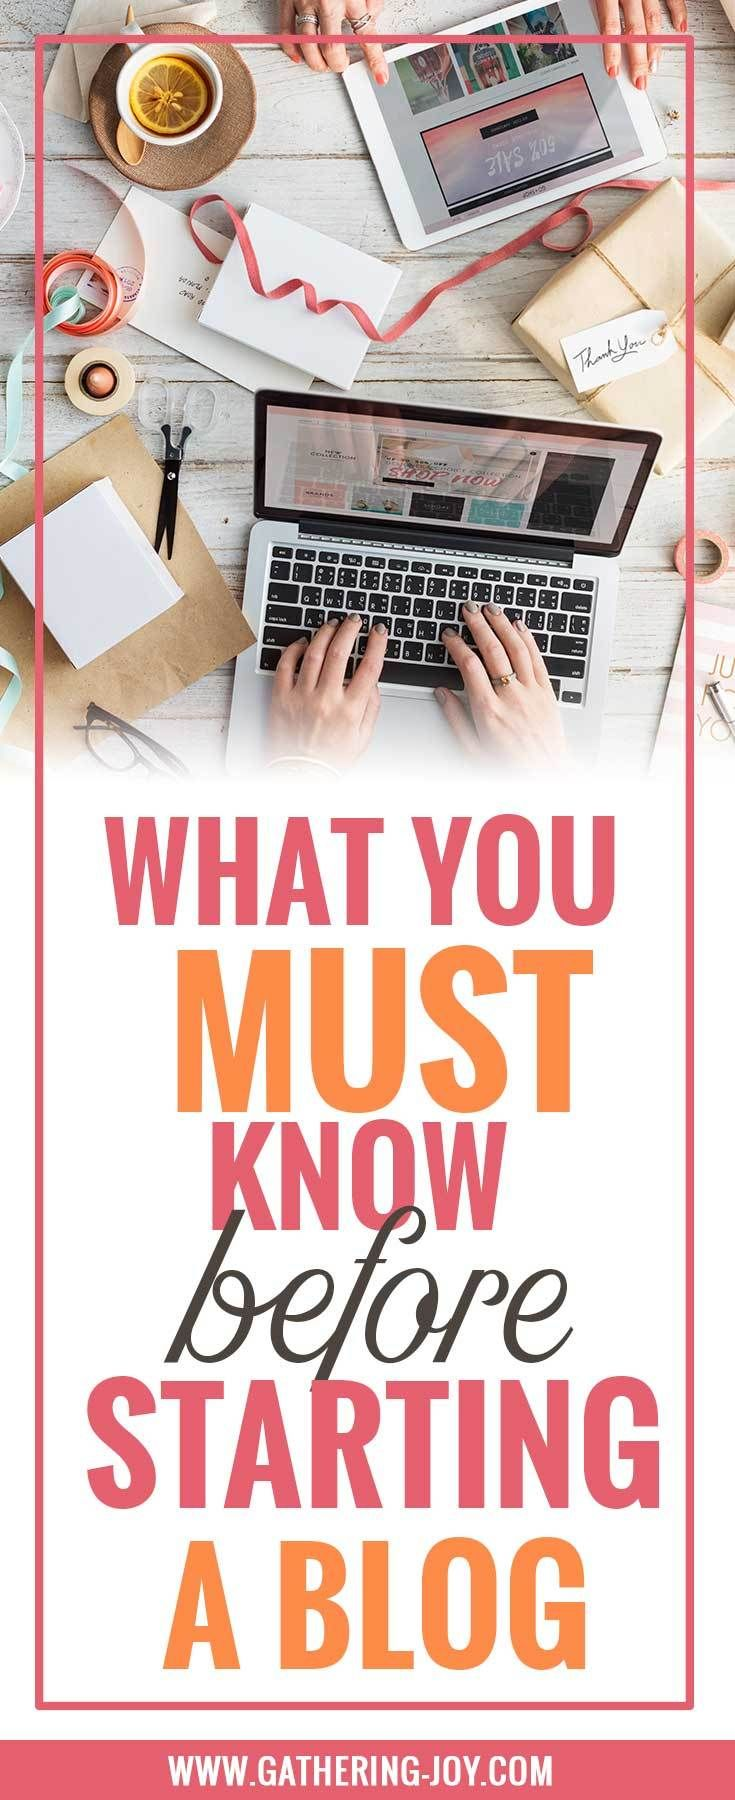 Starting a blog? Make sure you know these 6 things before you start!